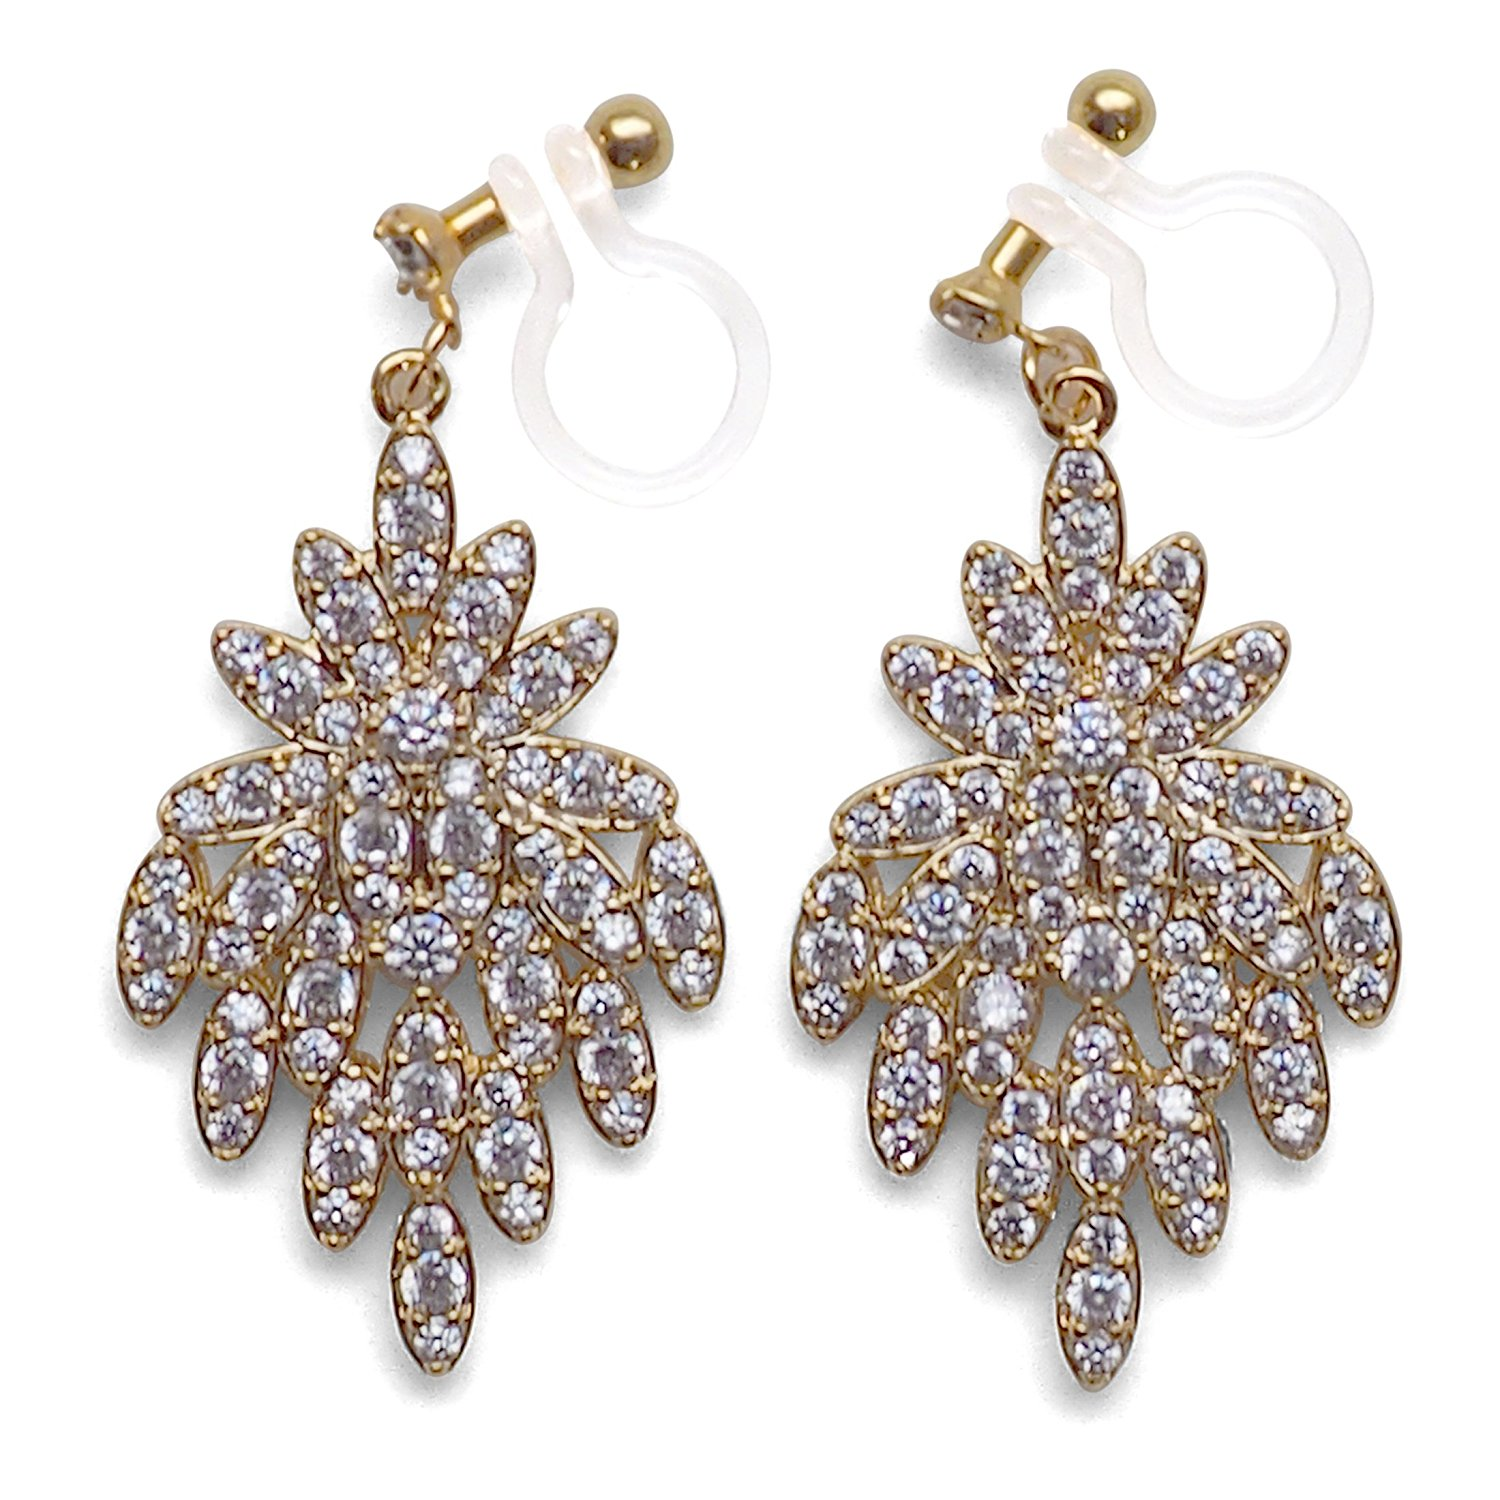 Bridal Wedding Cubic Zirconia Crystal CZ Flower Invisible Clip on Drop Earrings for Women Gold tone